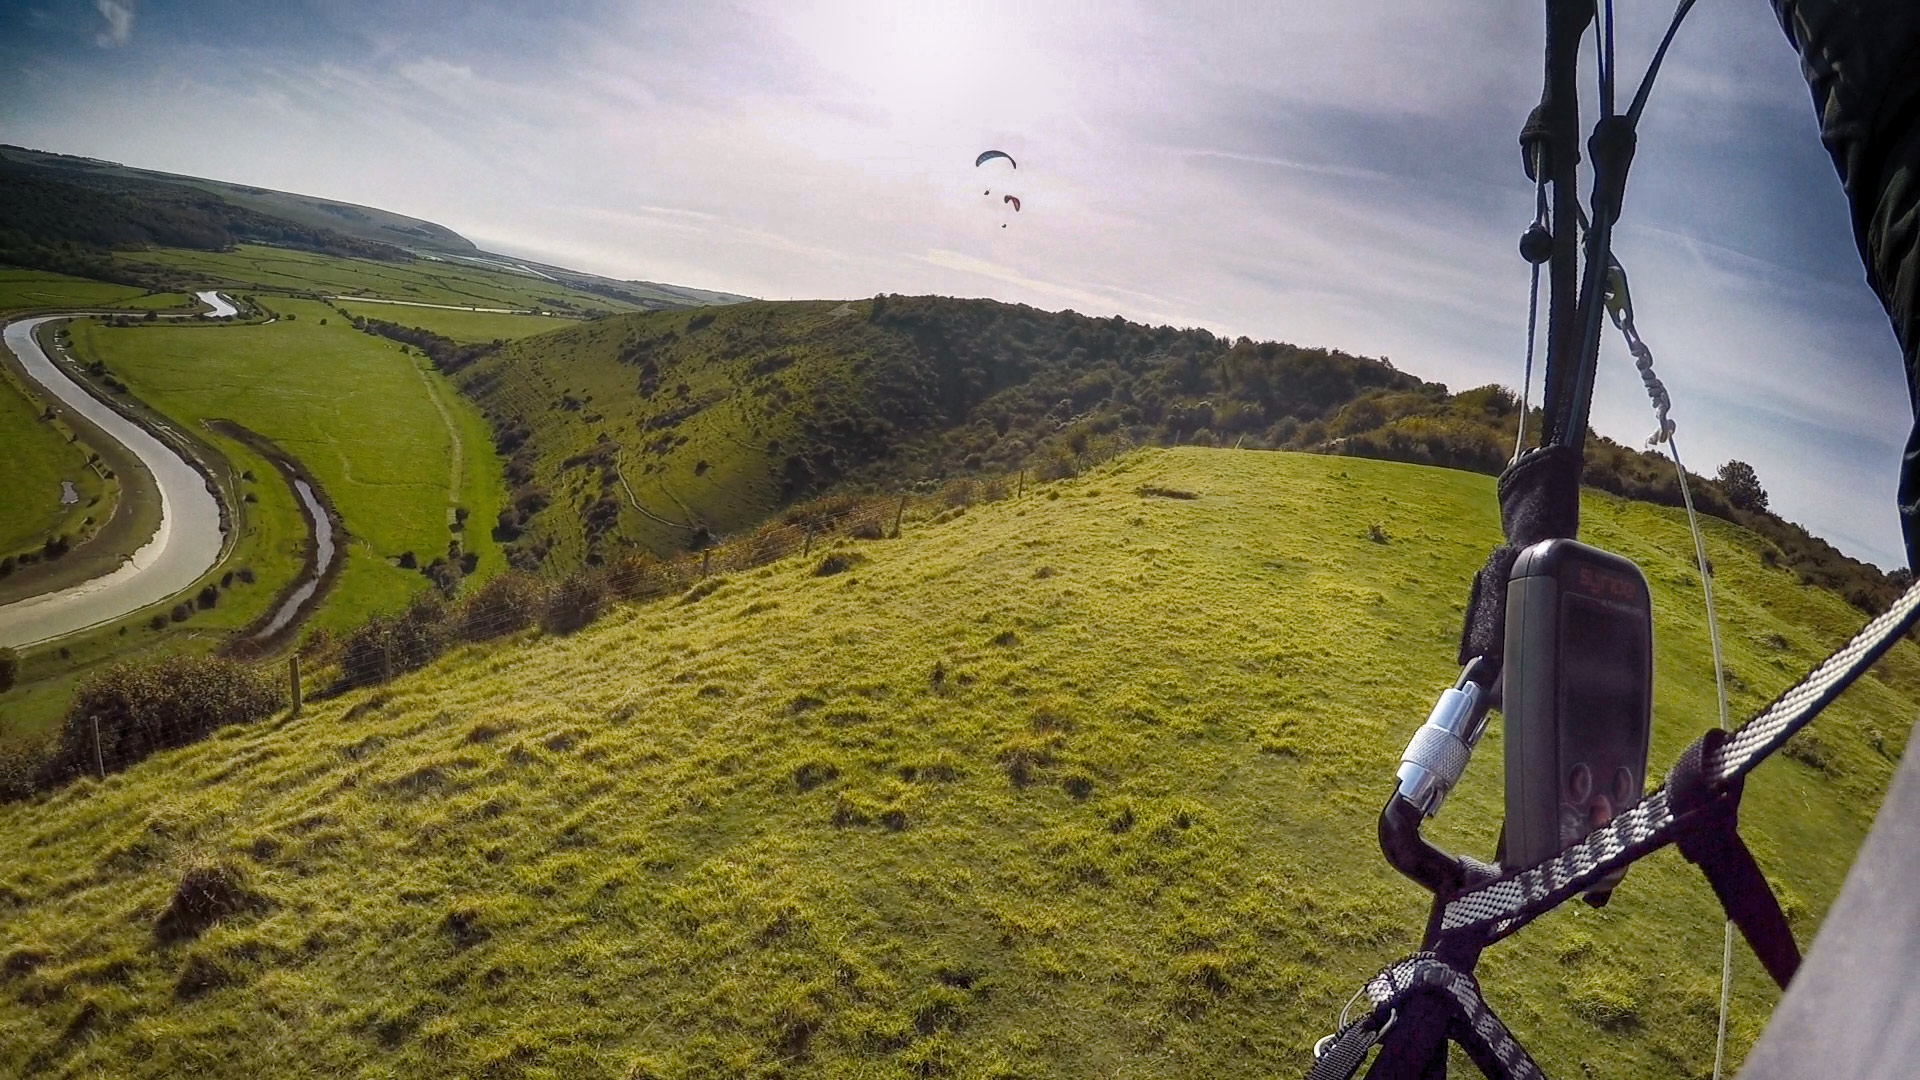 How To Topland Safely (On a Paraglider) - Flybubble Blog